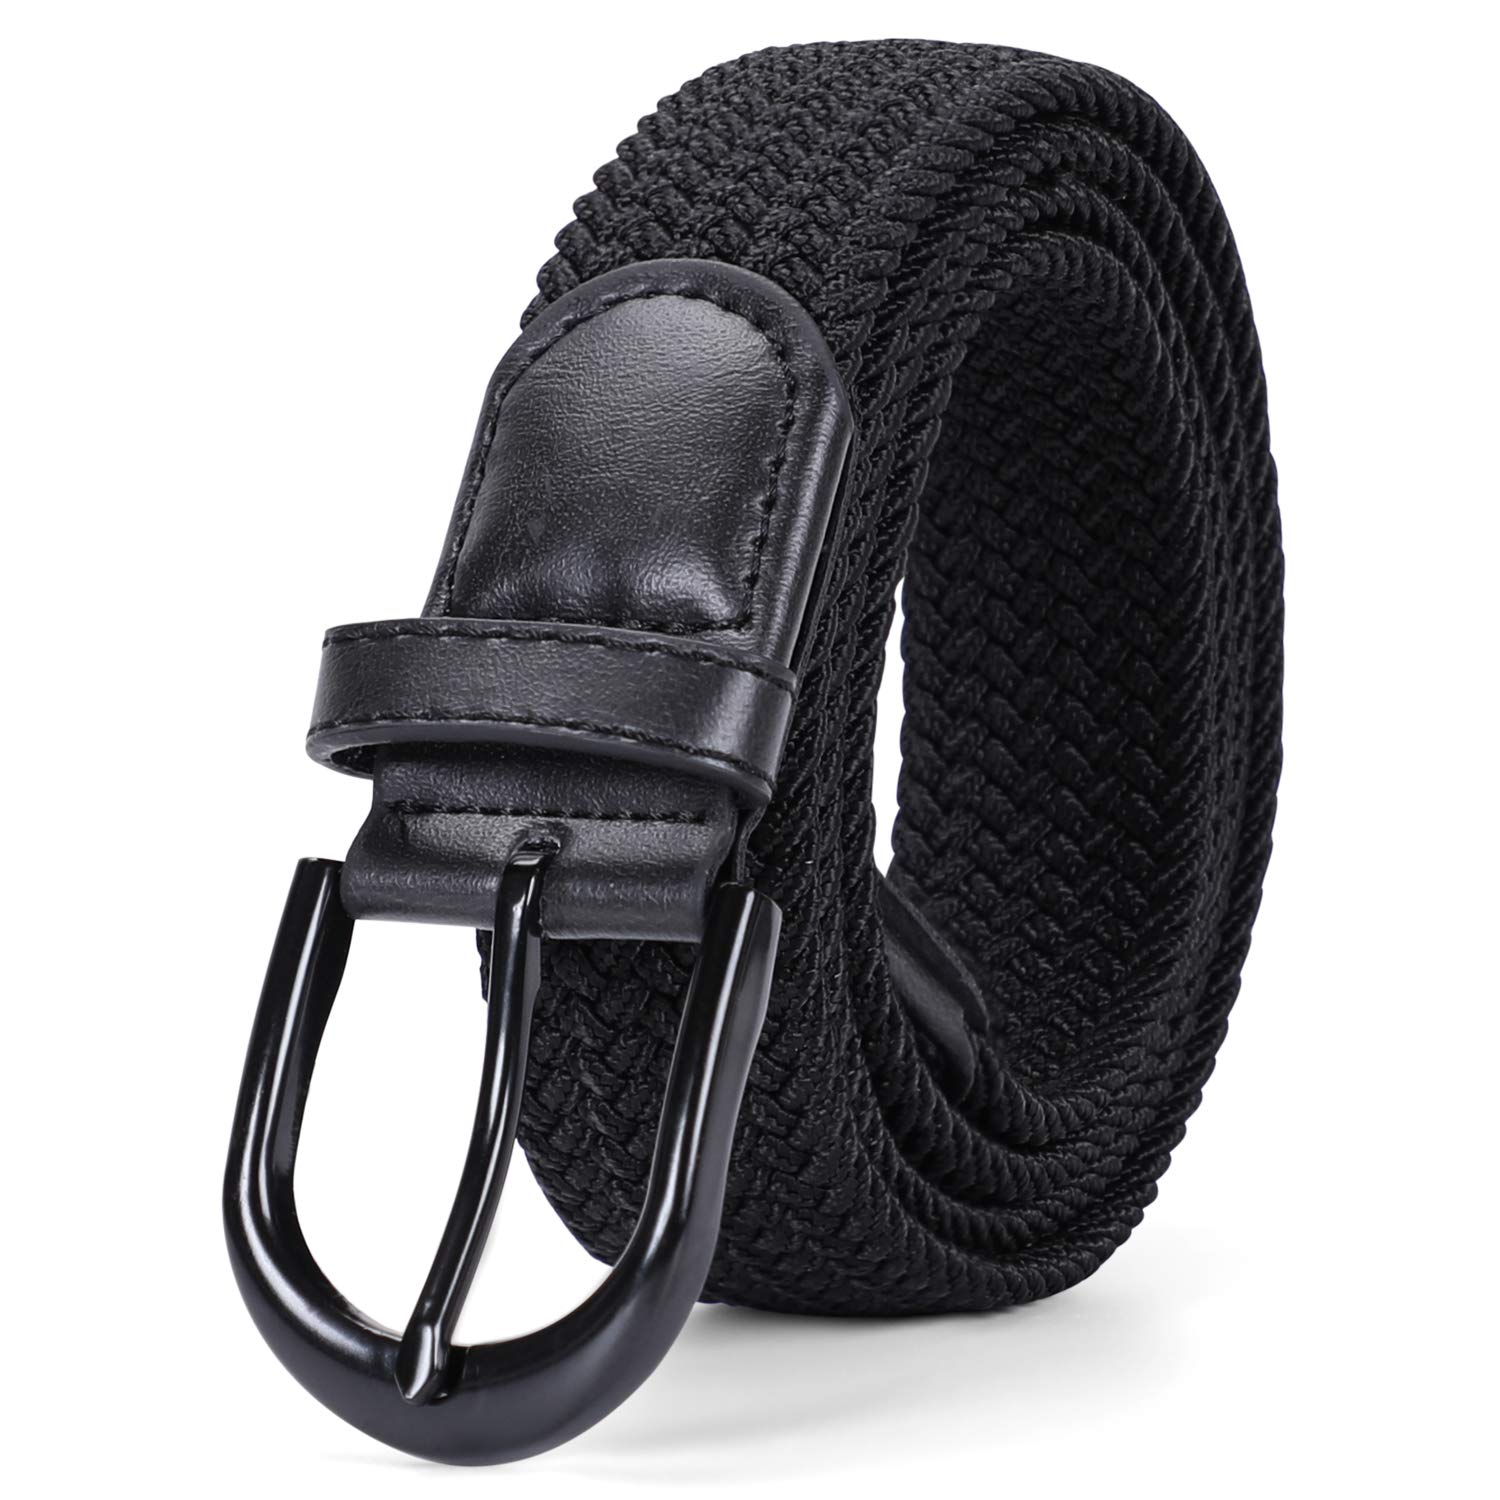 Fashion Women Canvas Braided Belts Stretch Elastic Slack Belt Strap Waist Belts